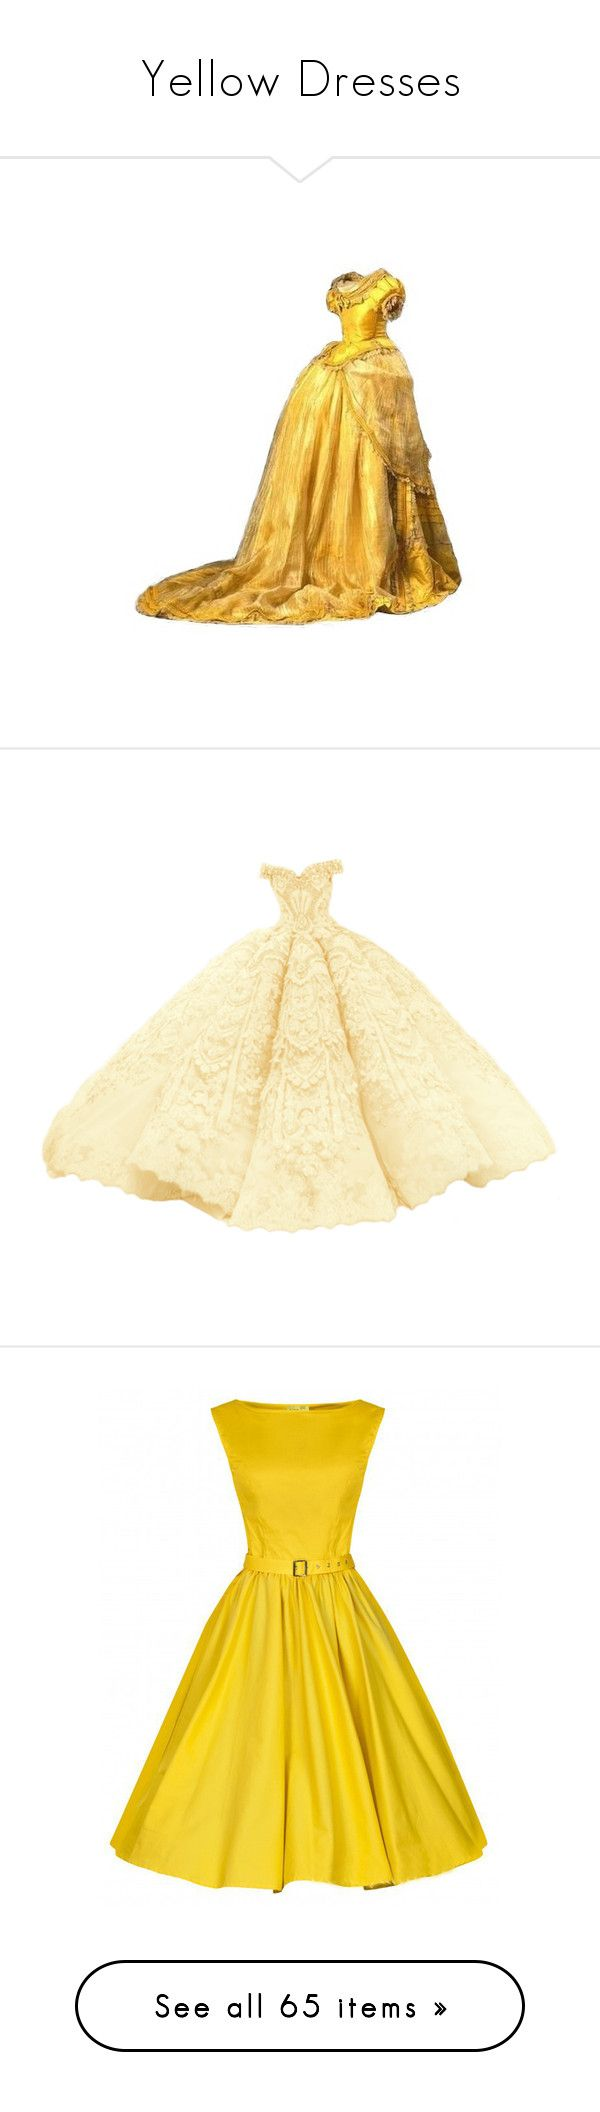 """""""Yellow Dresses"""" by delta14o6 on Polyvore featuring dresses, the dresses, gown, beige dress, vestido, yellow, vintage dresses, vintage sleeveless dress, yellow dress and vintage day dress"""